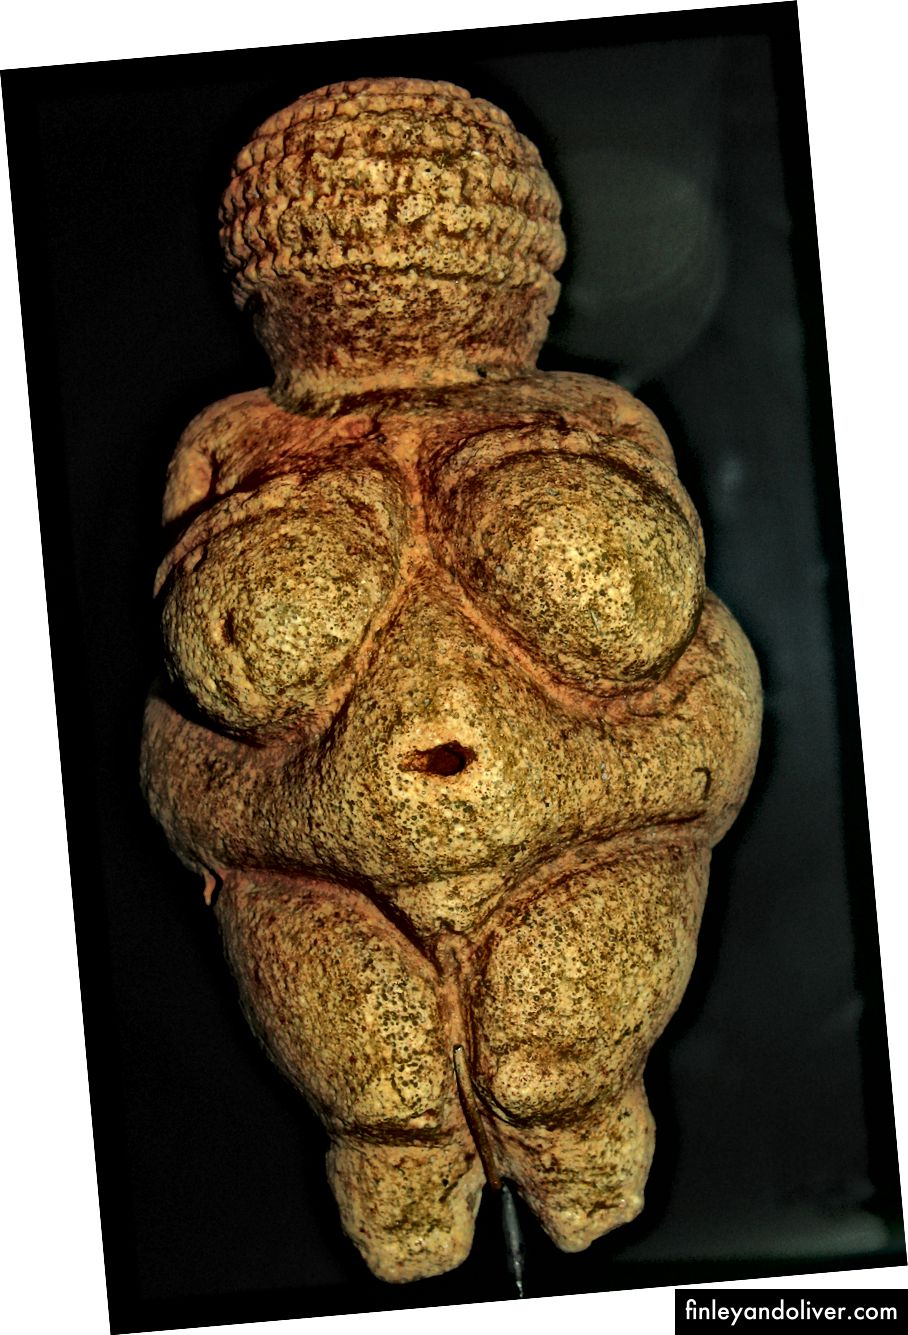 Venus of Willendorf (fotokreditt)